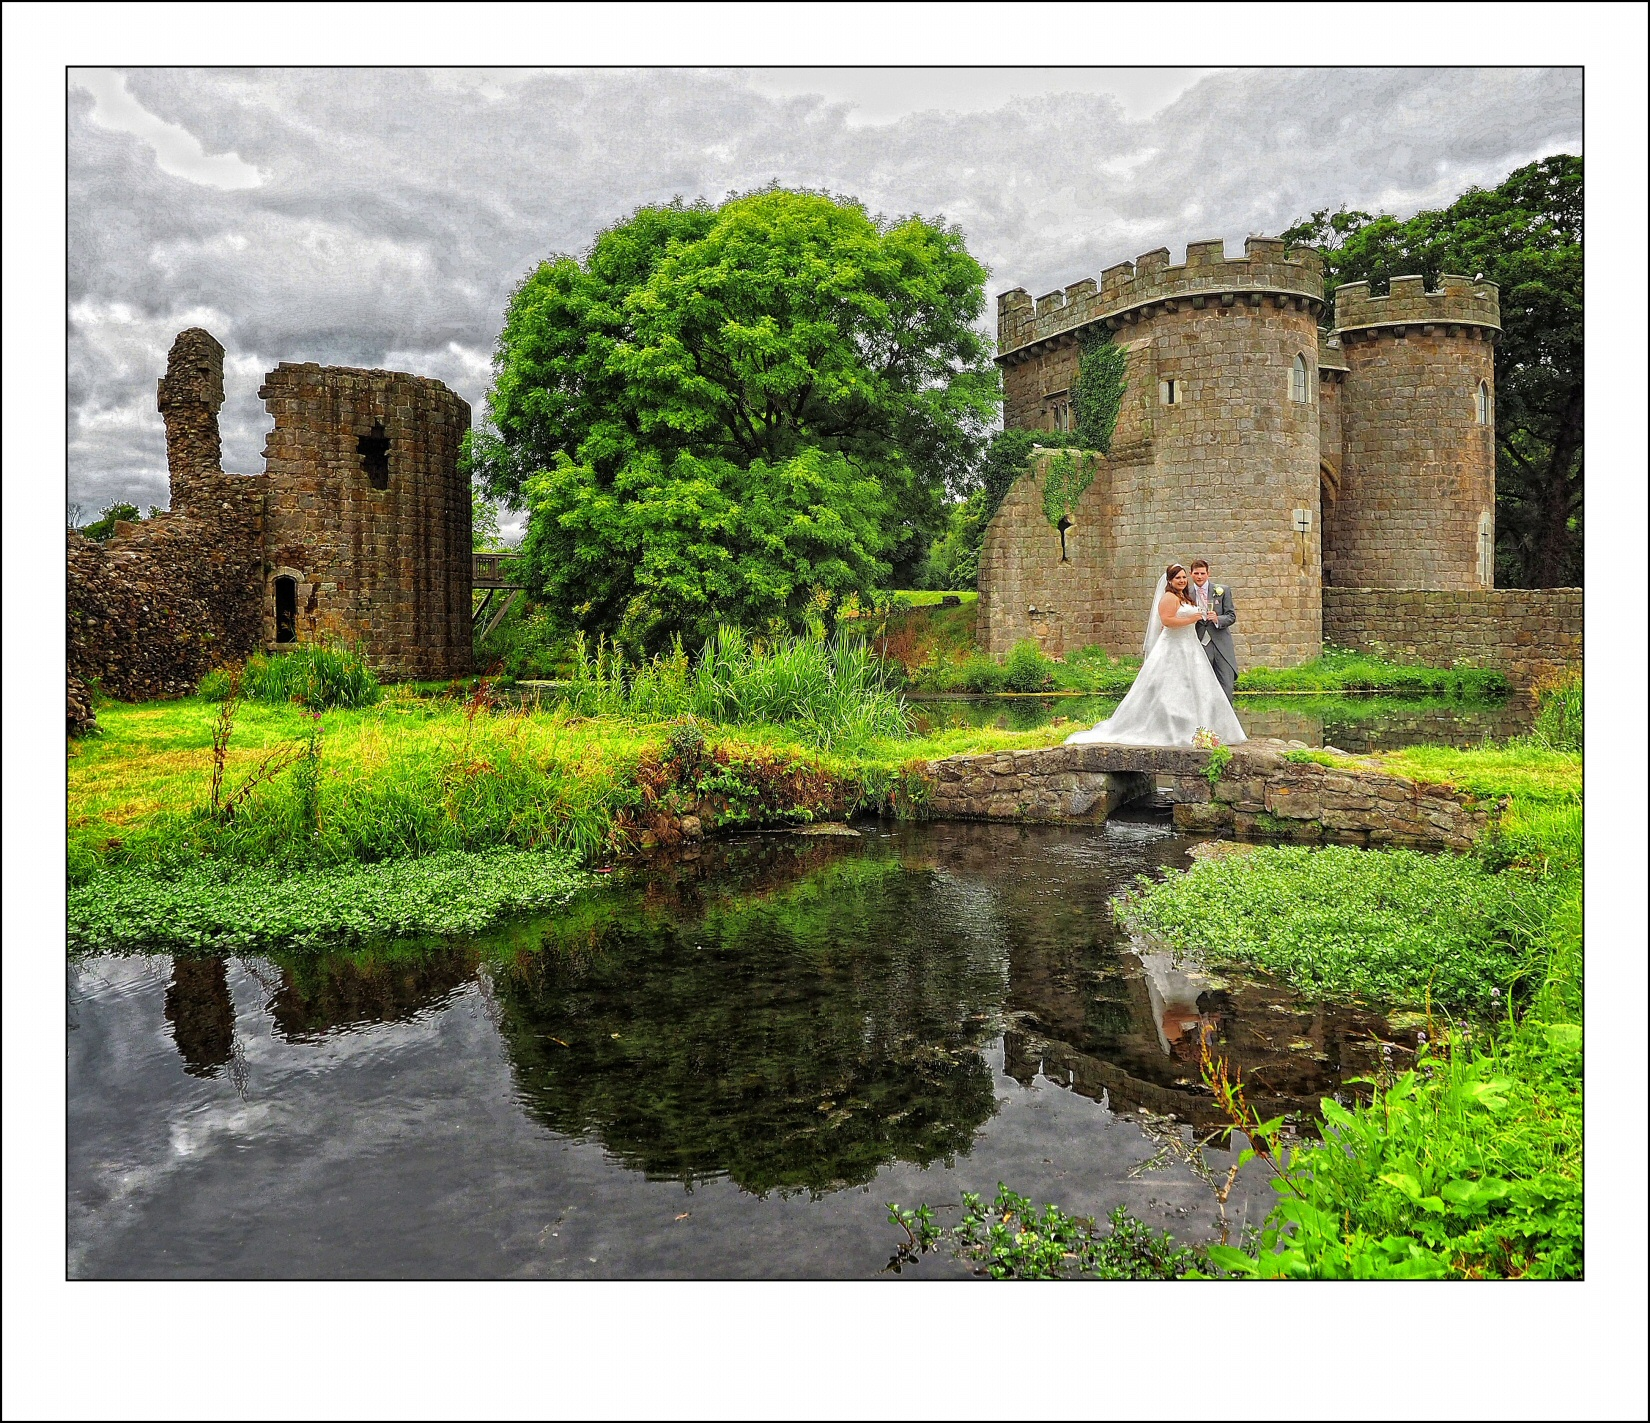 Wedding photographer recommended by the Whittington Castle